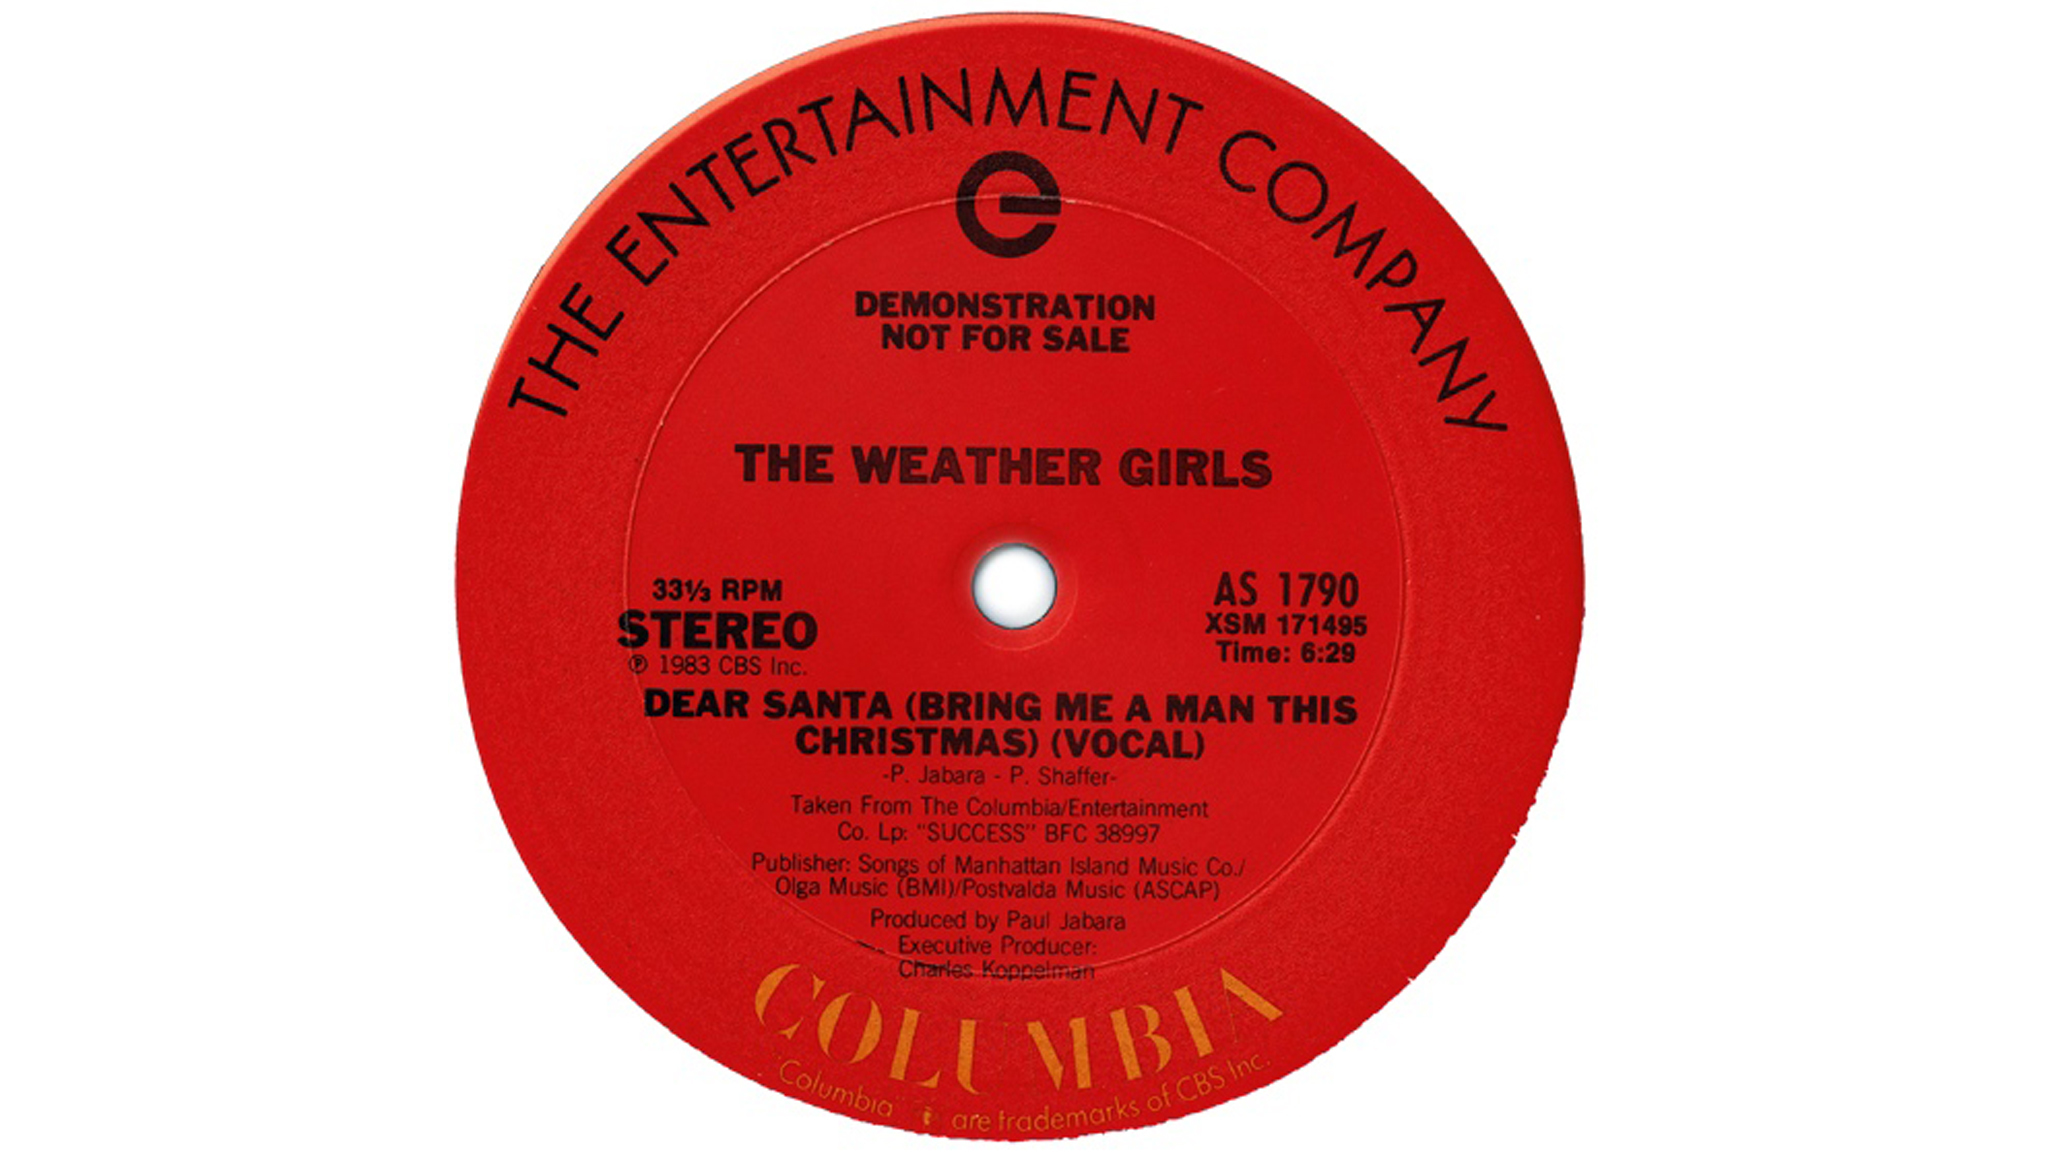 'Dear Santa (Bring Me a Man This Christmas)' – Weather Girls